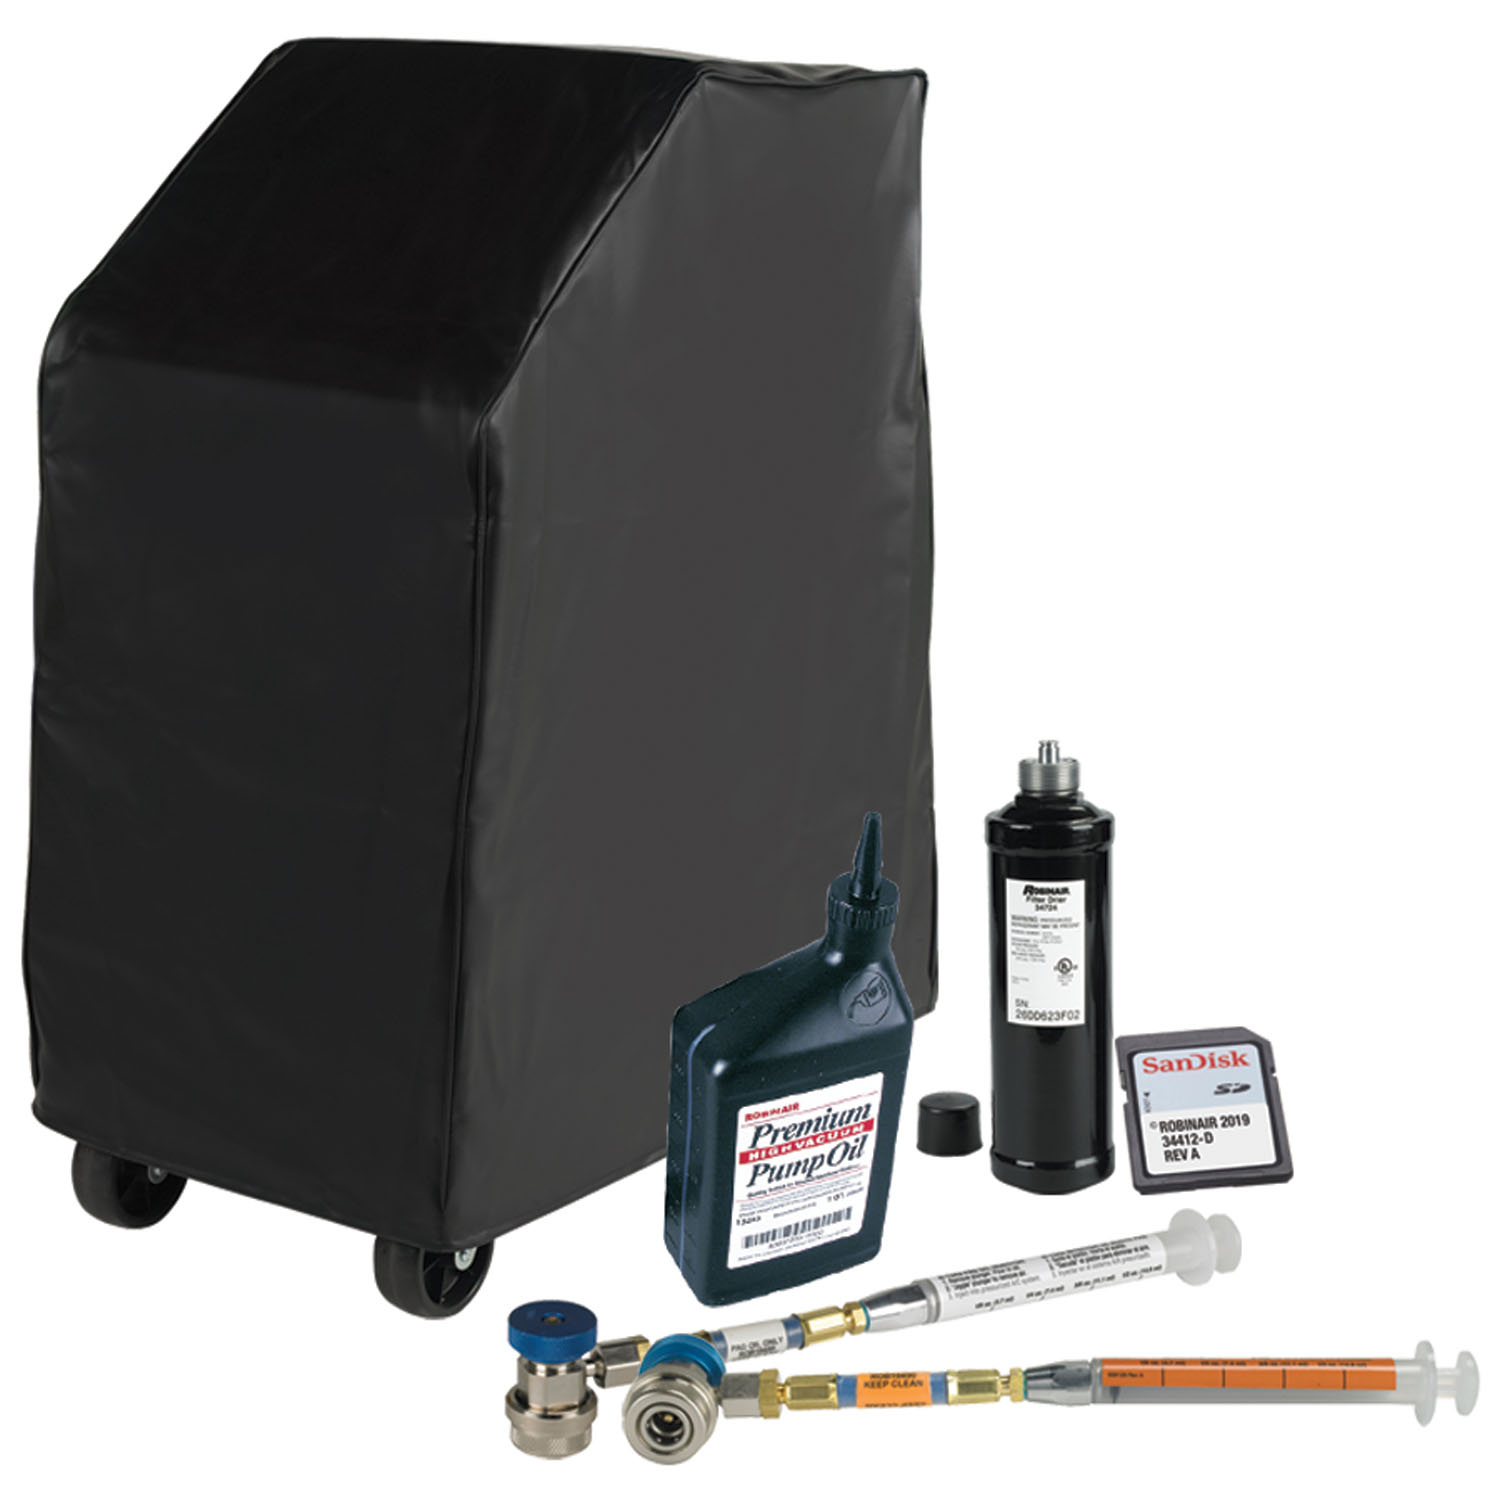 Robinair Combo Kit for R134A Vehicle A/C Refrigerant Database 2019 w/ Oil Injectors, Dust Cover, Filter & Oil